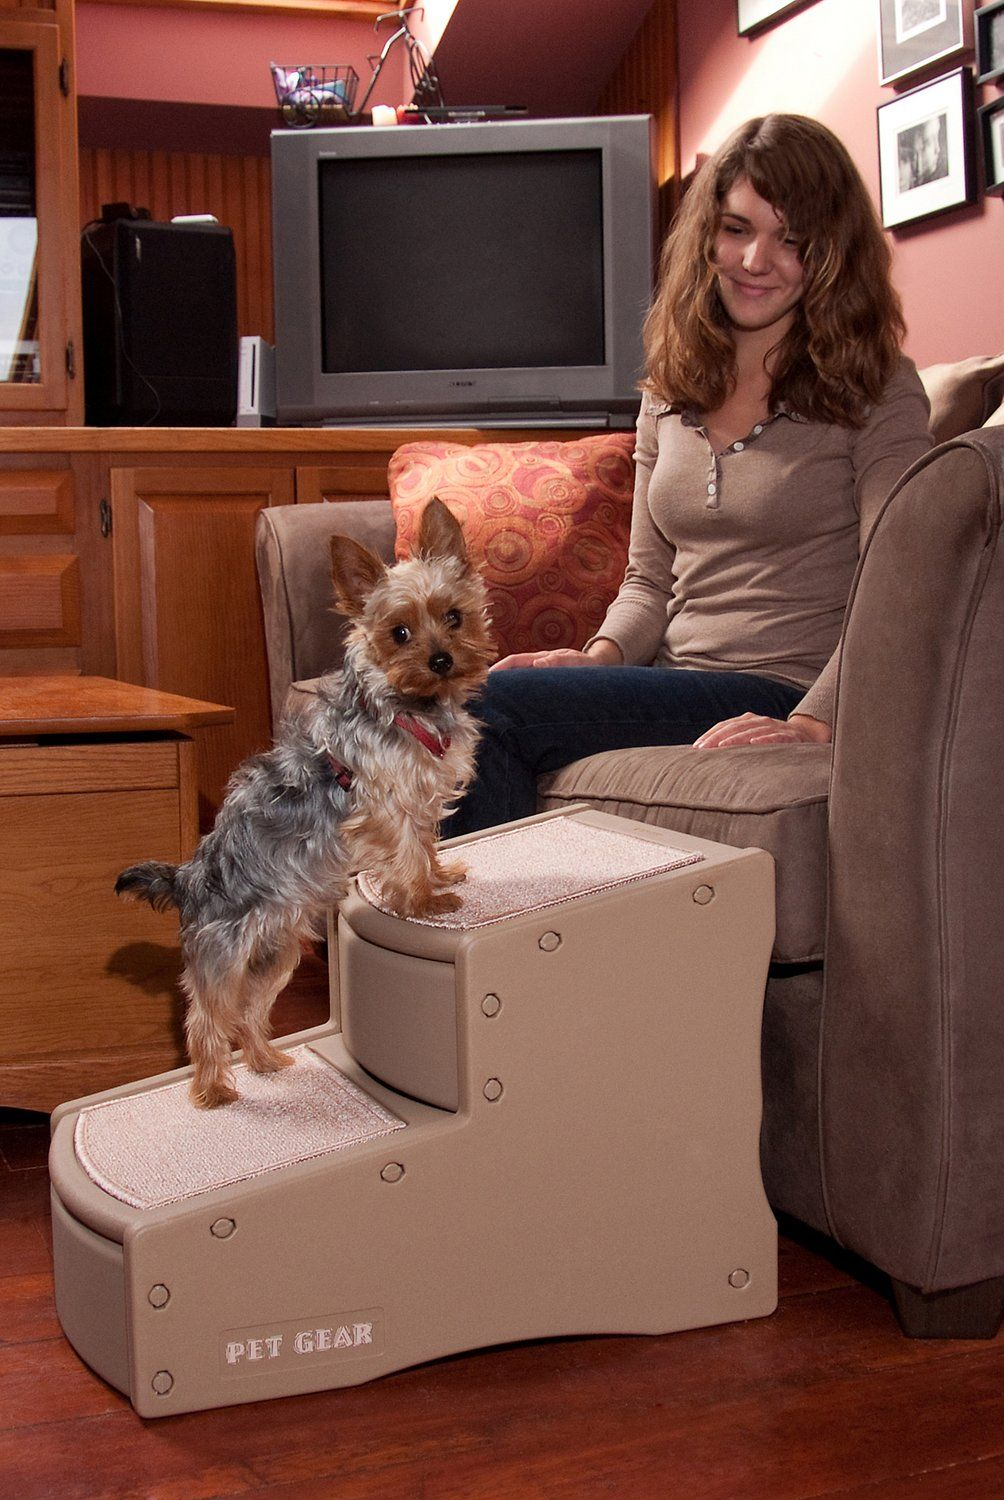 The Easy Step II Pet Stair has wide, deep steps to give